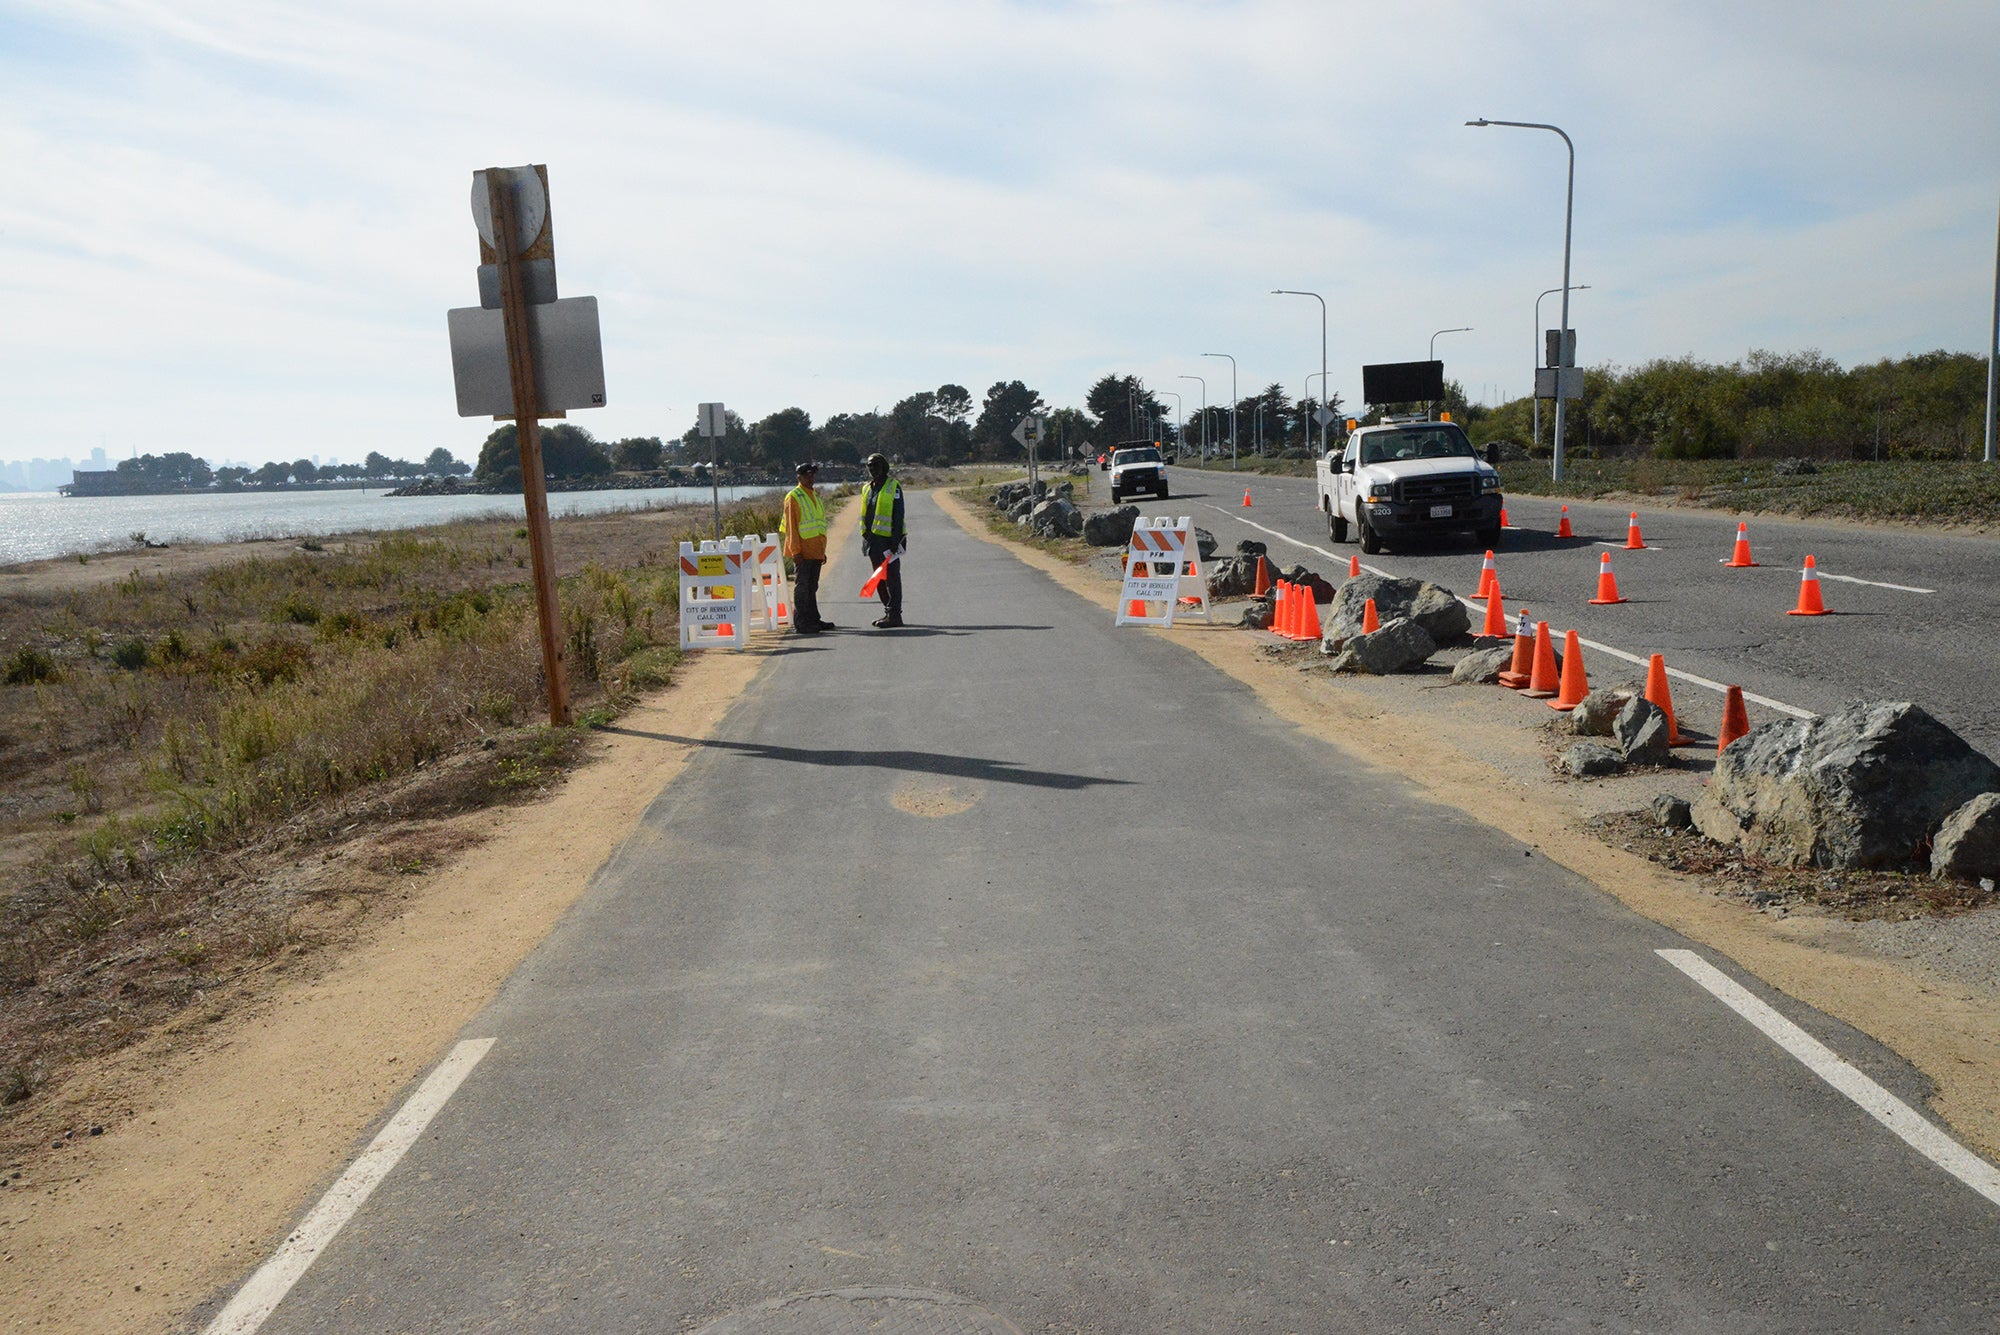 The trail extension stretches along the south side of University Avenue toward the Marina.